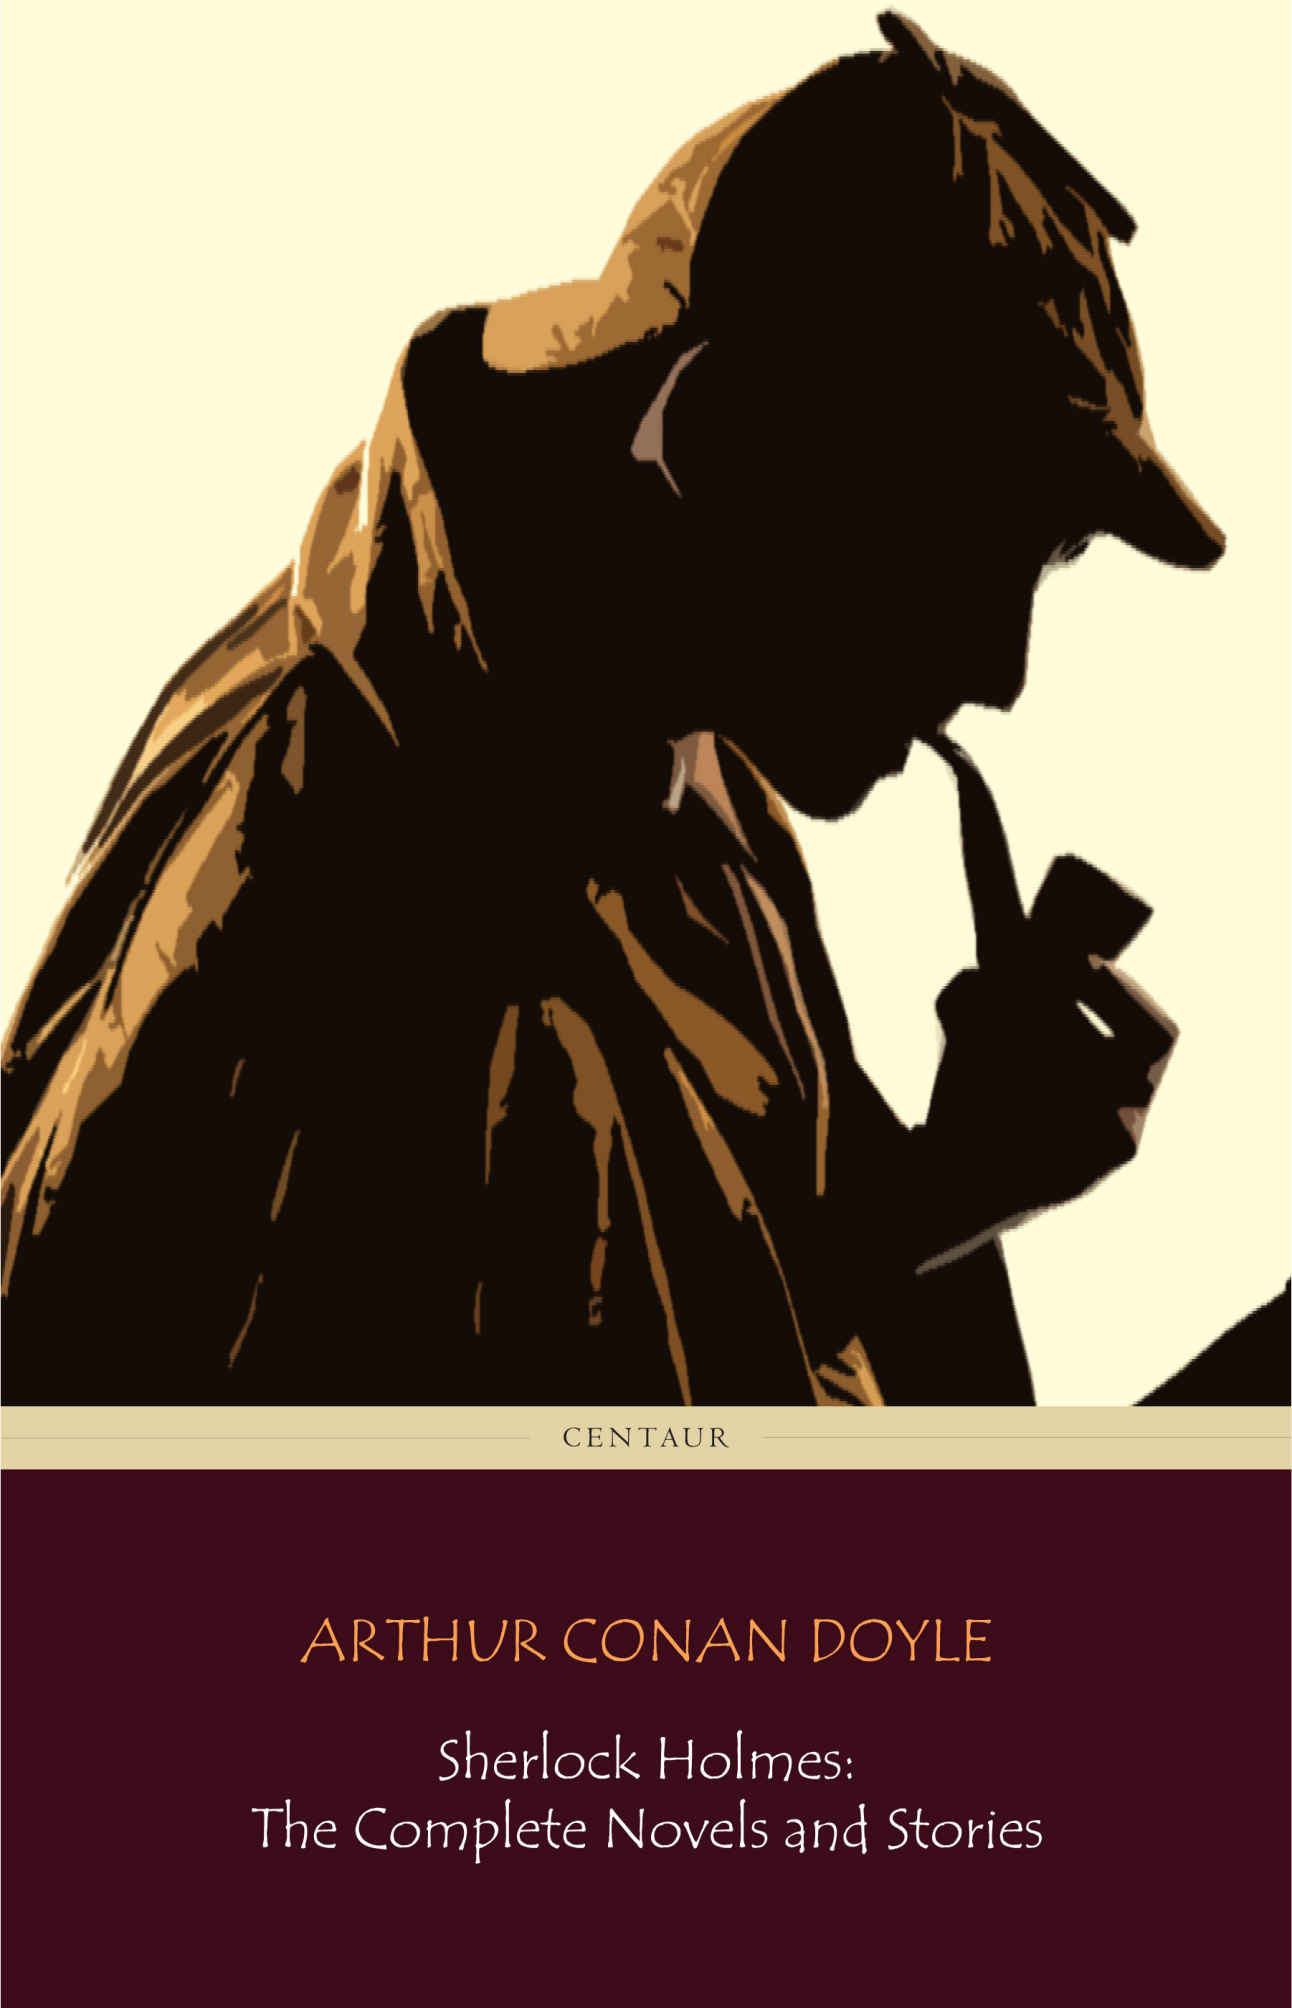 Sherlock Holmes: The Complete Novels and Stories Kindle Edition by Arthur Conan Doyle